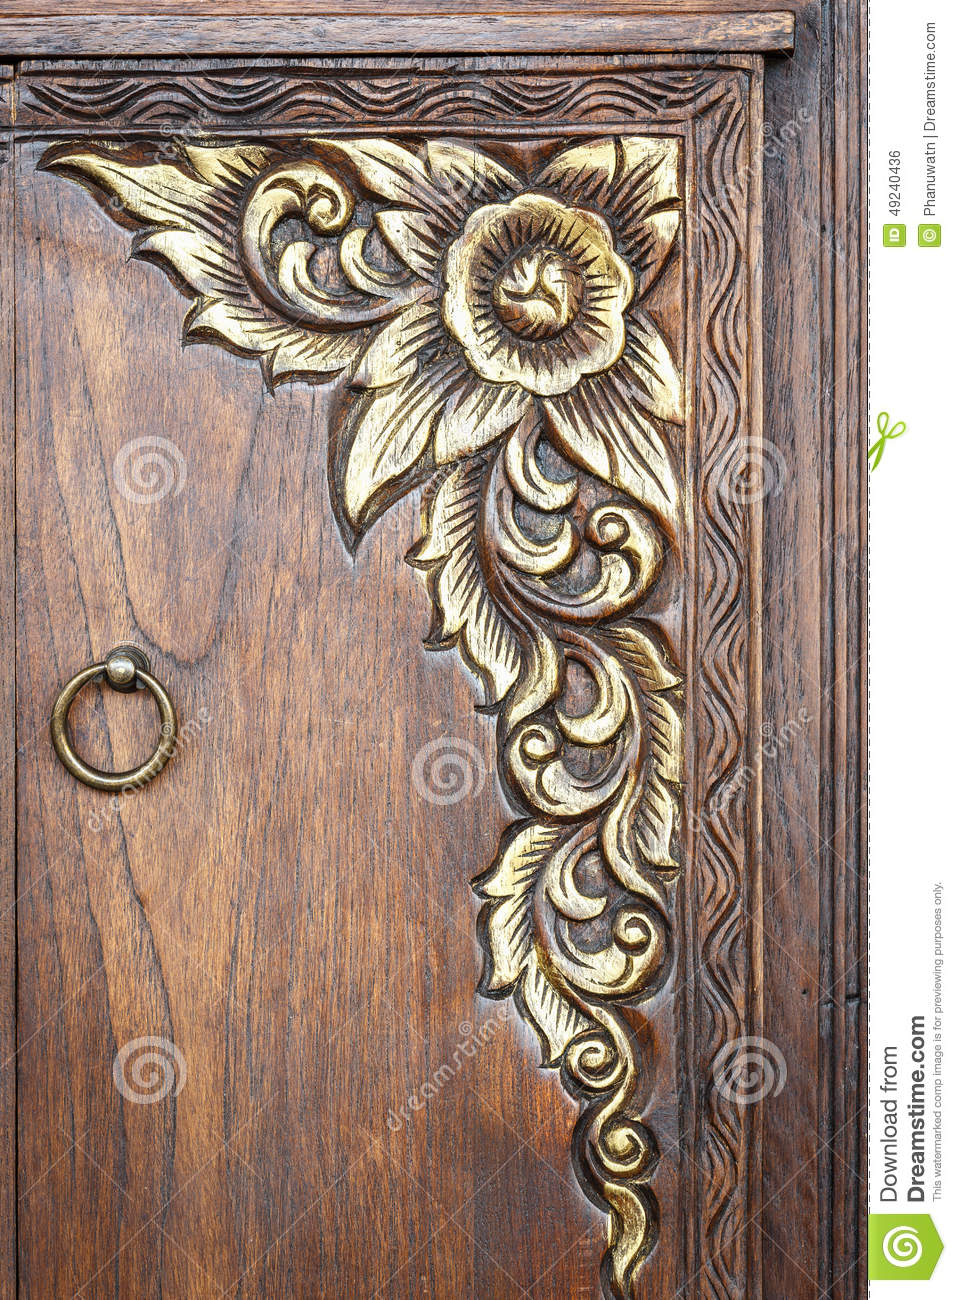 Door carving jj 170 for Wood carving doors hd images